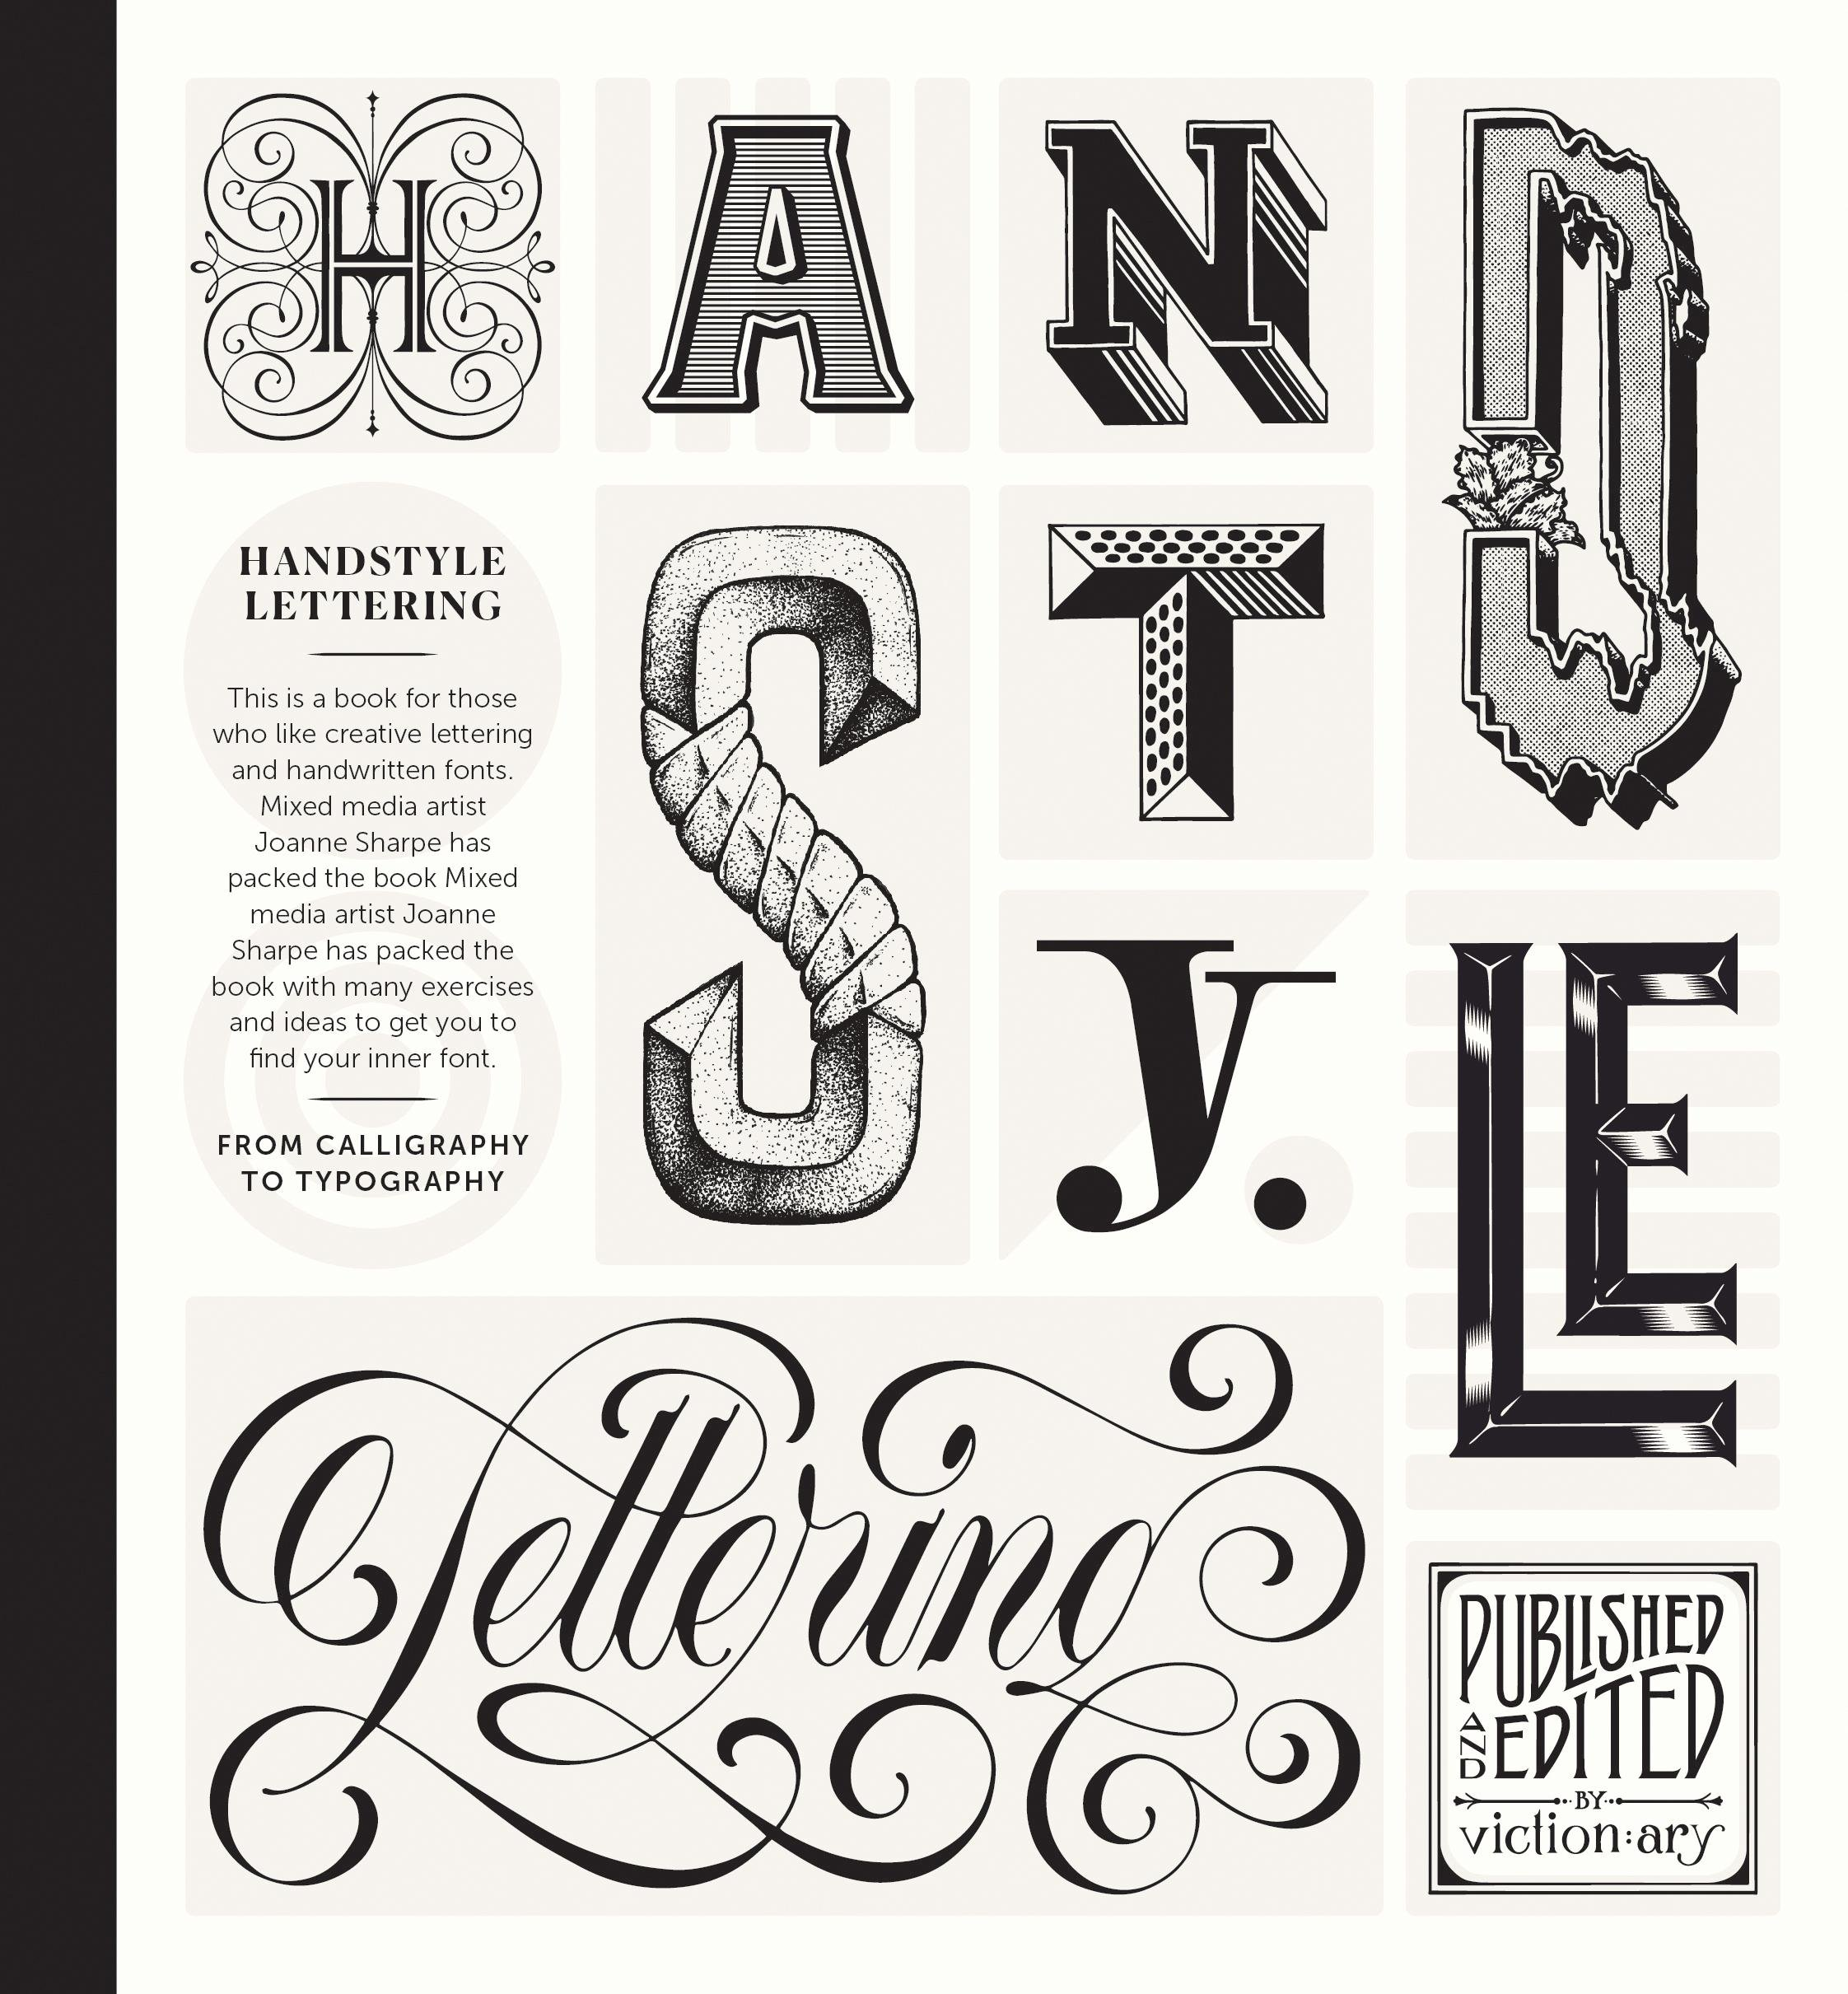 Handstyle Lettering: From Calligraphy to Typography: Viction